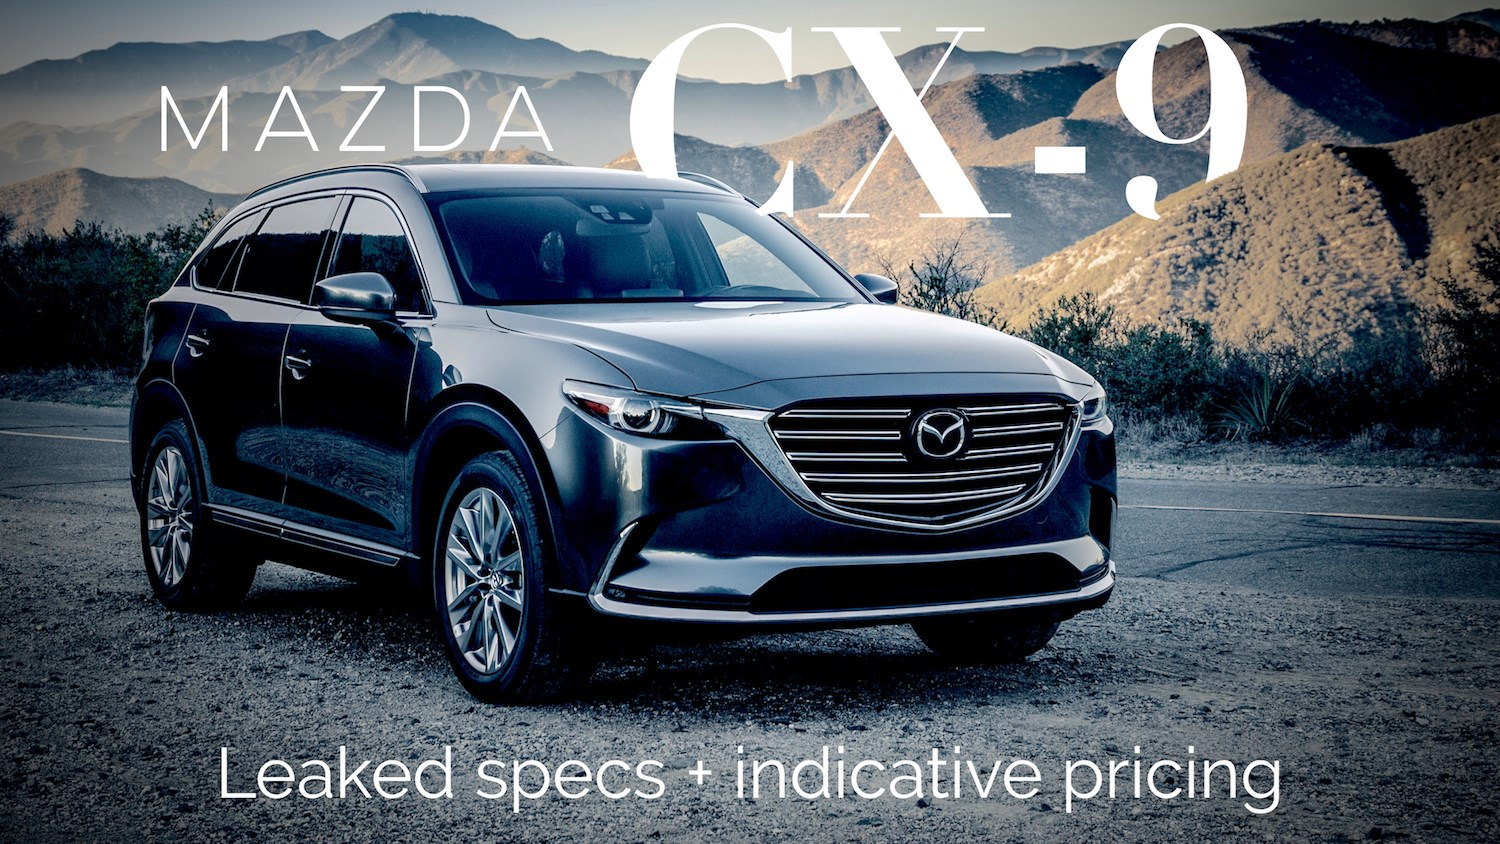 2016 Mazda CX-9 Australian Pricing, Details Leaked